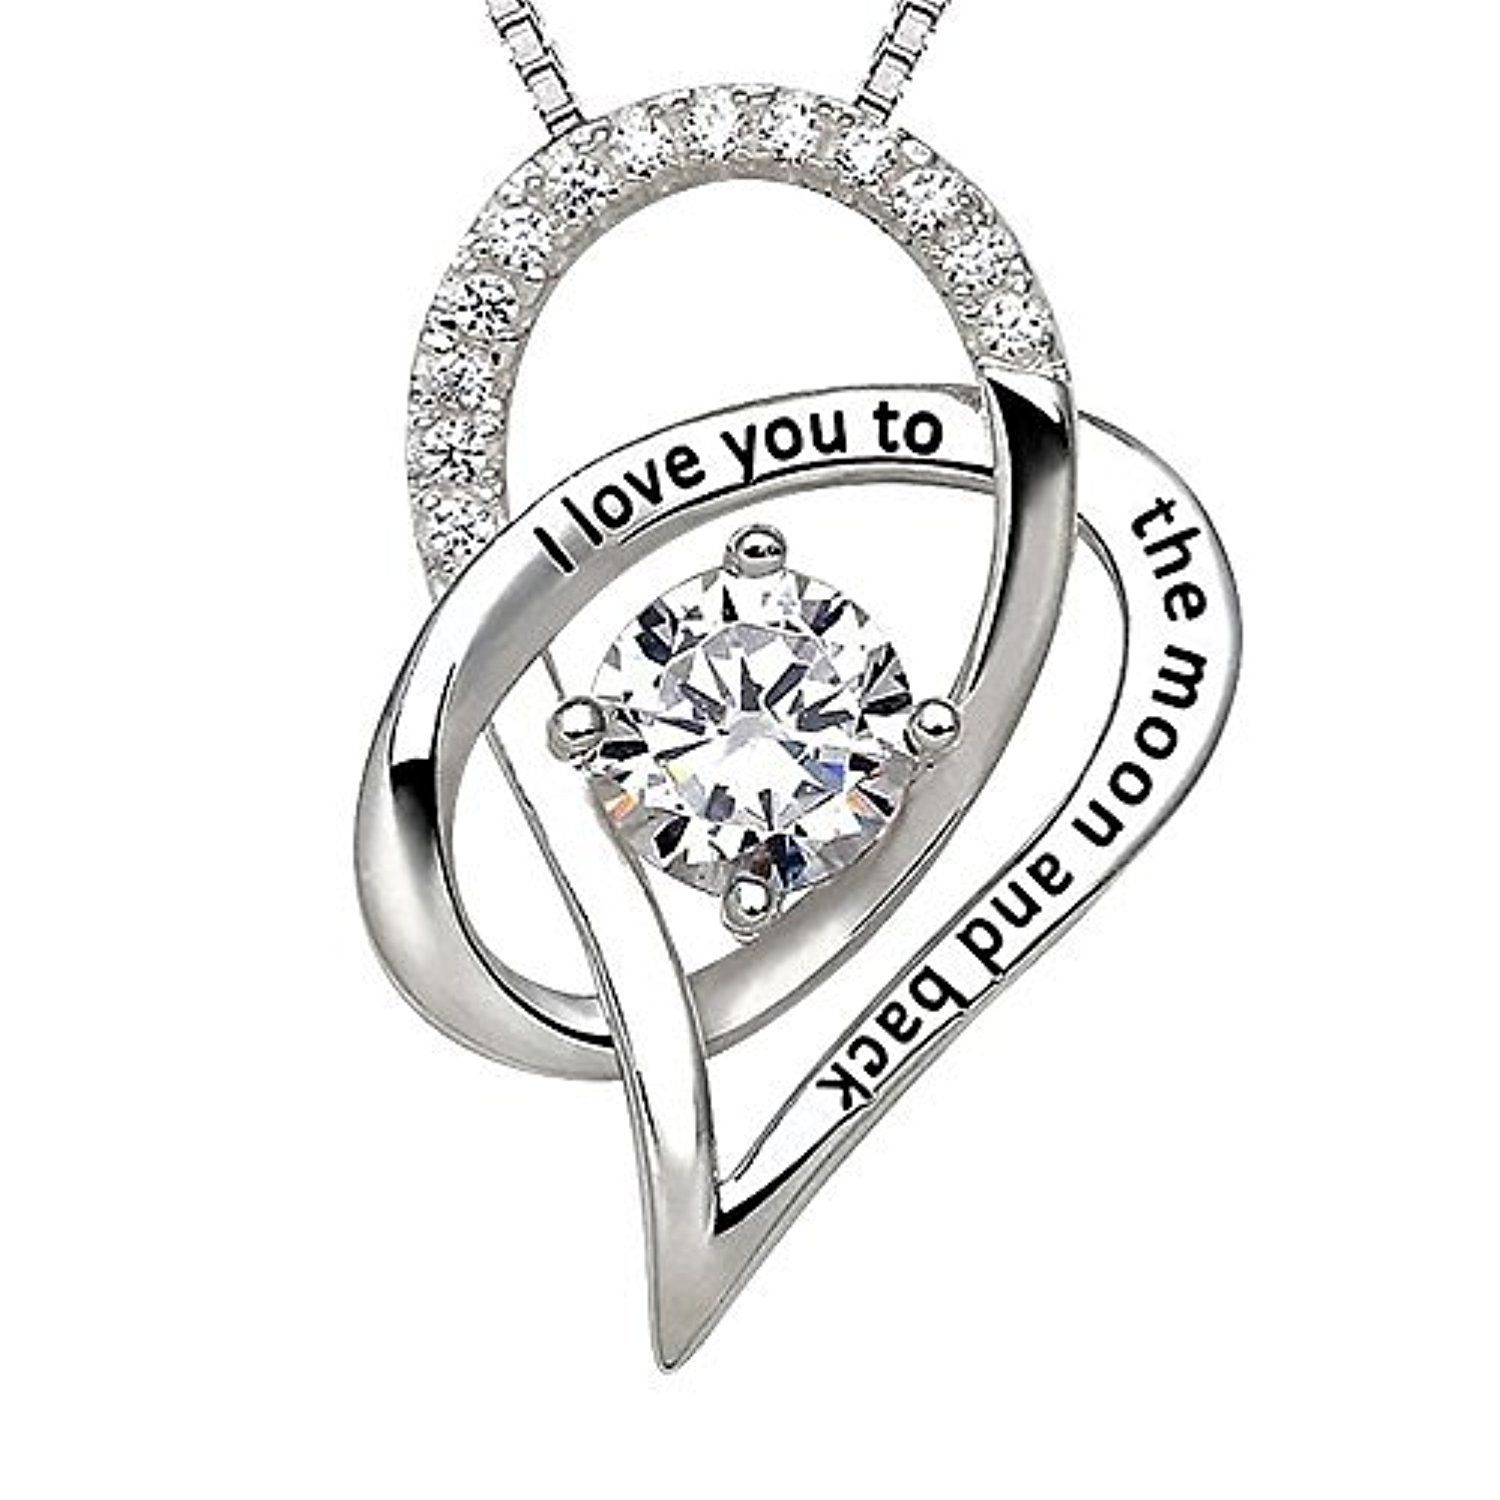 J Christian Collection I Love You to the Moon and Back Heart